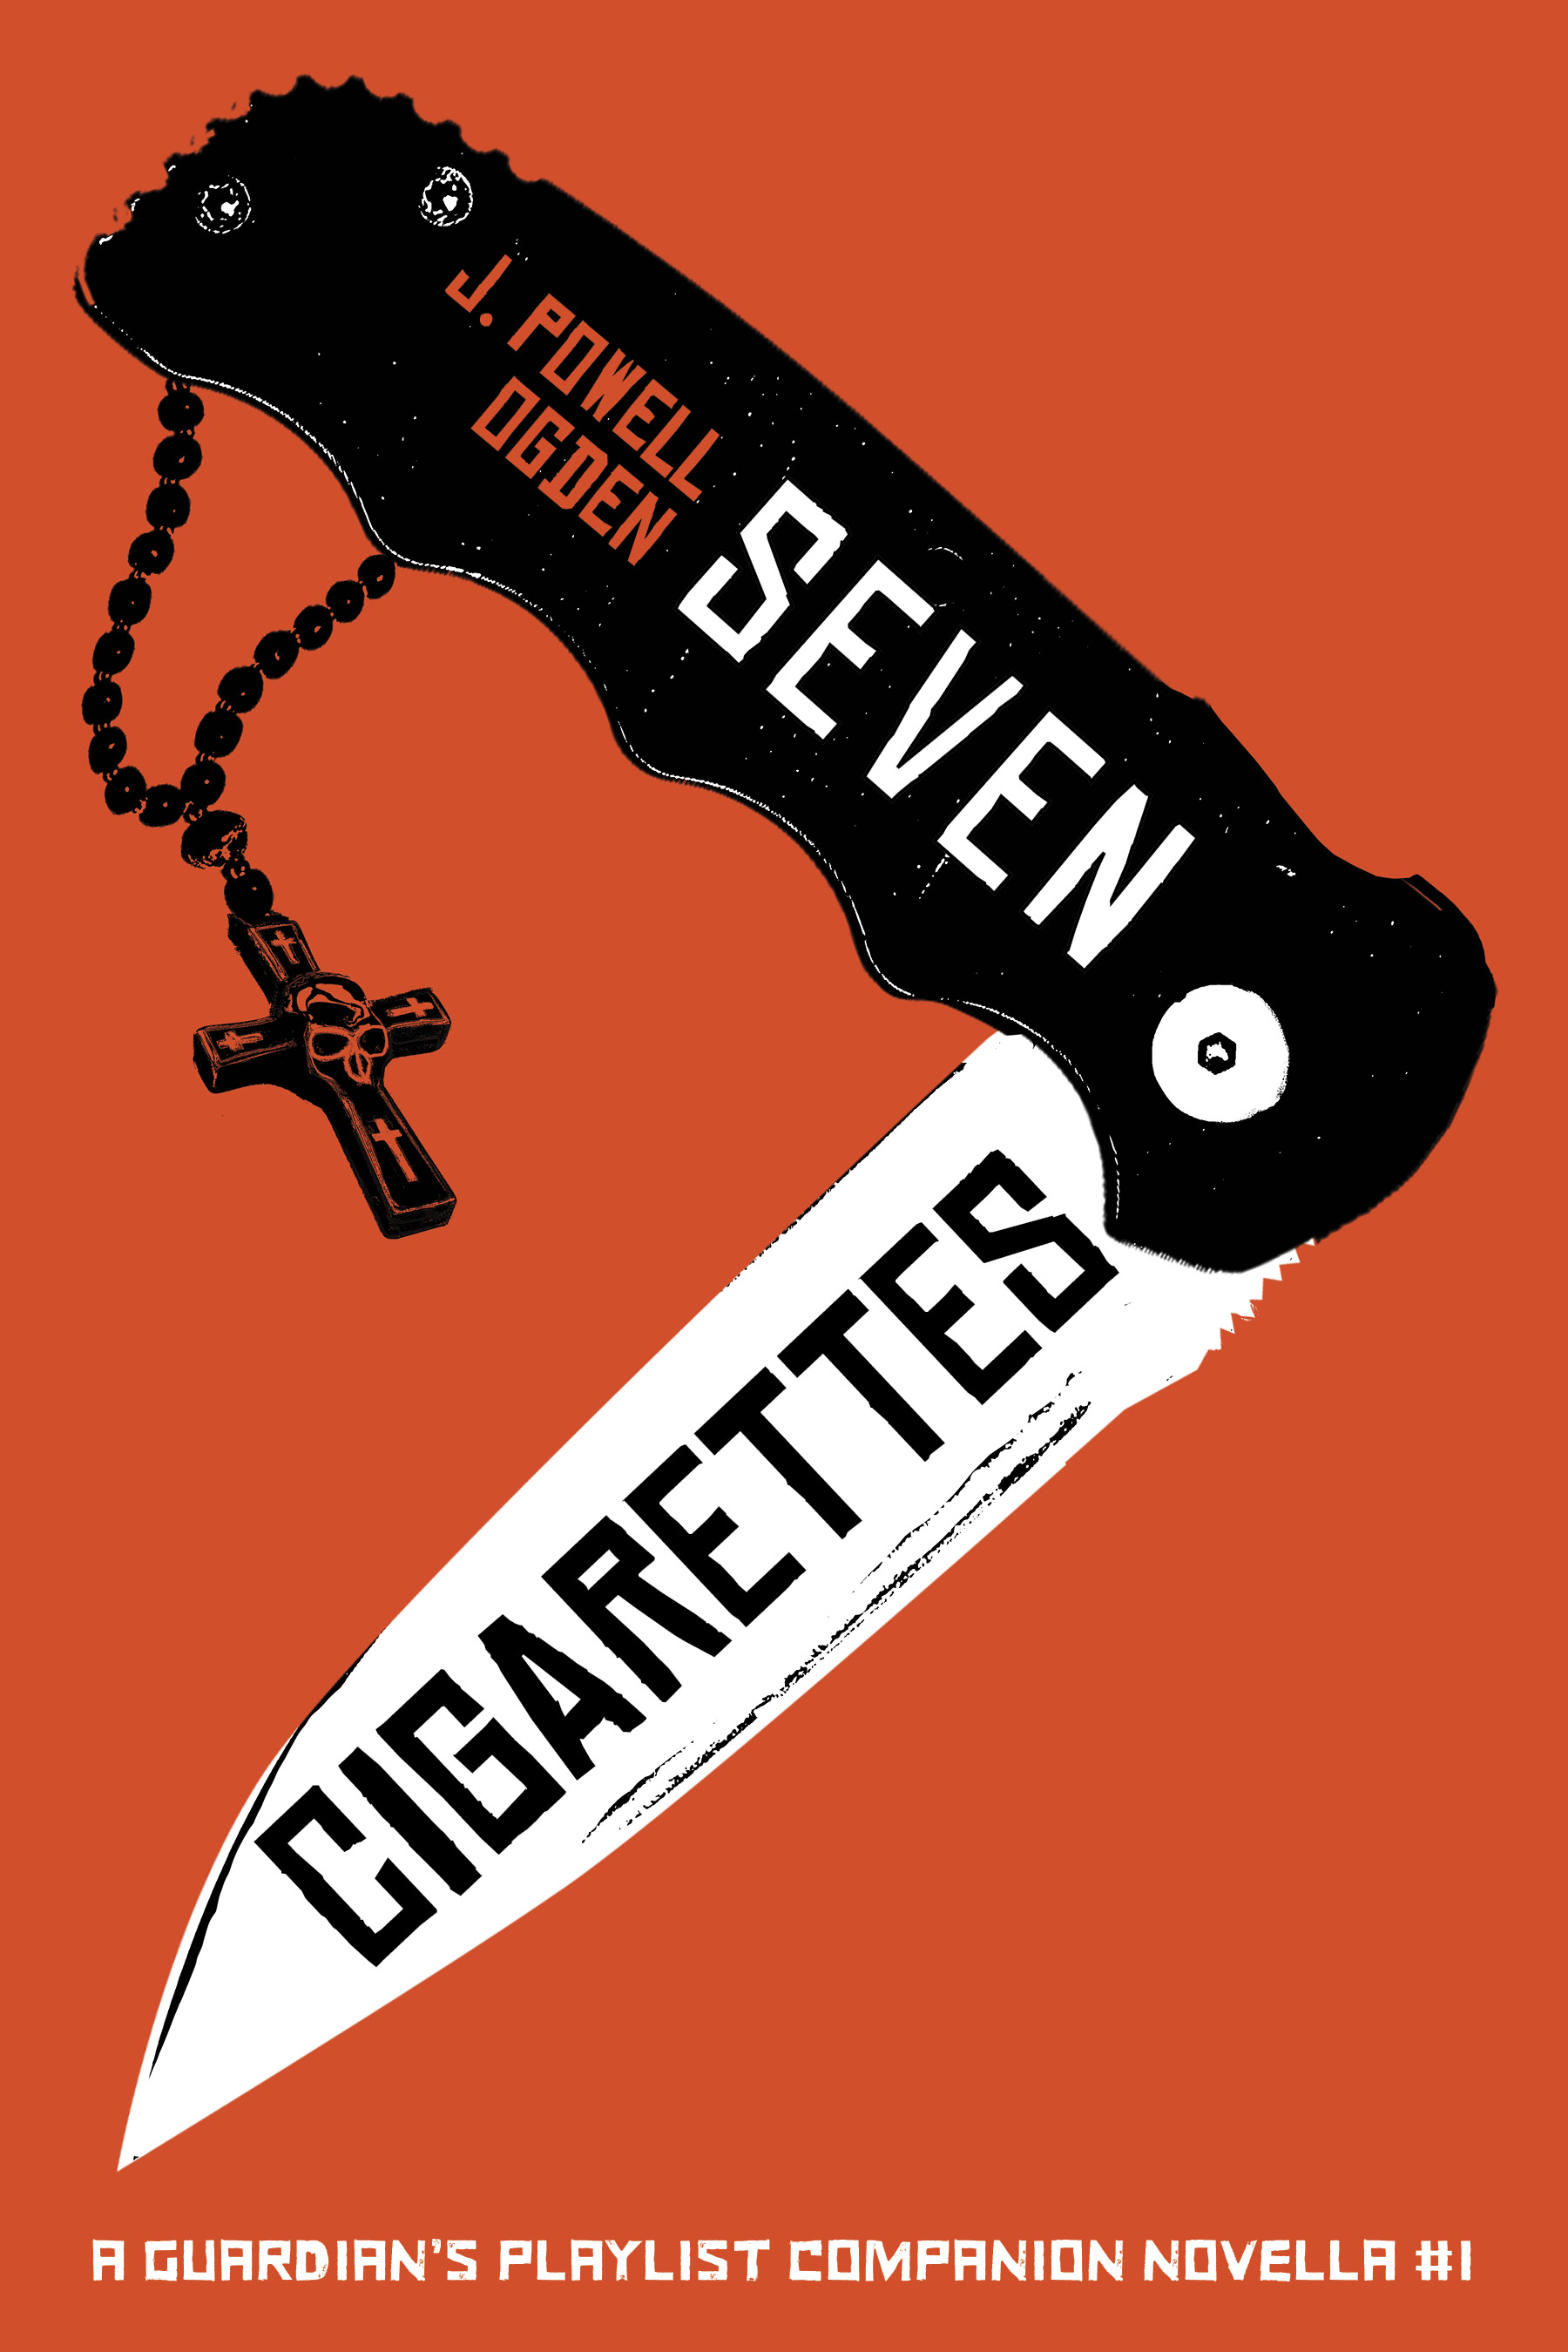 SEVEN CIGARETTES by J. Powell Ogden